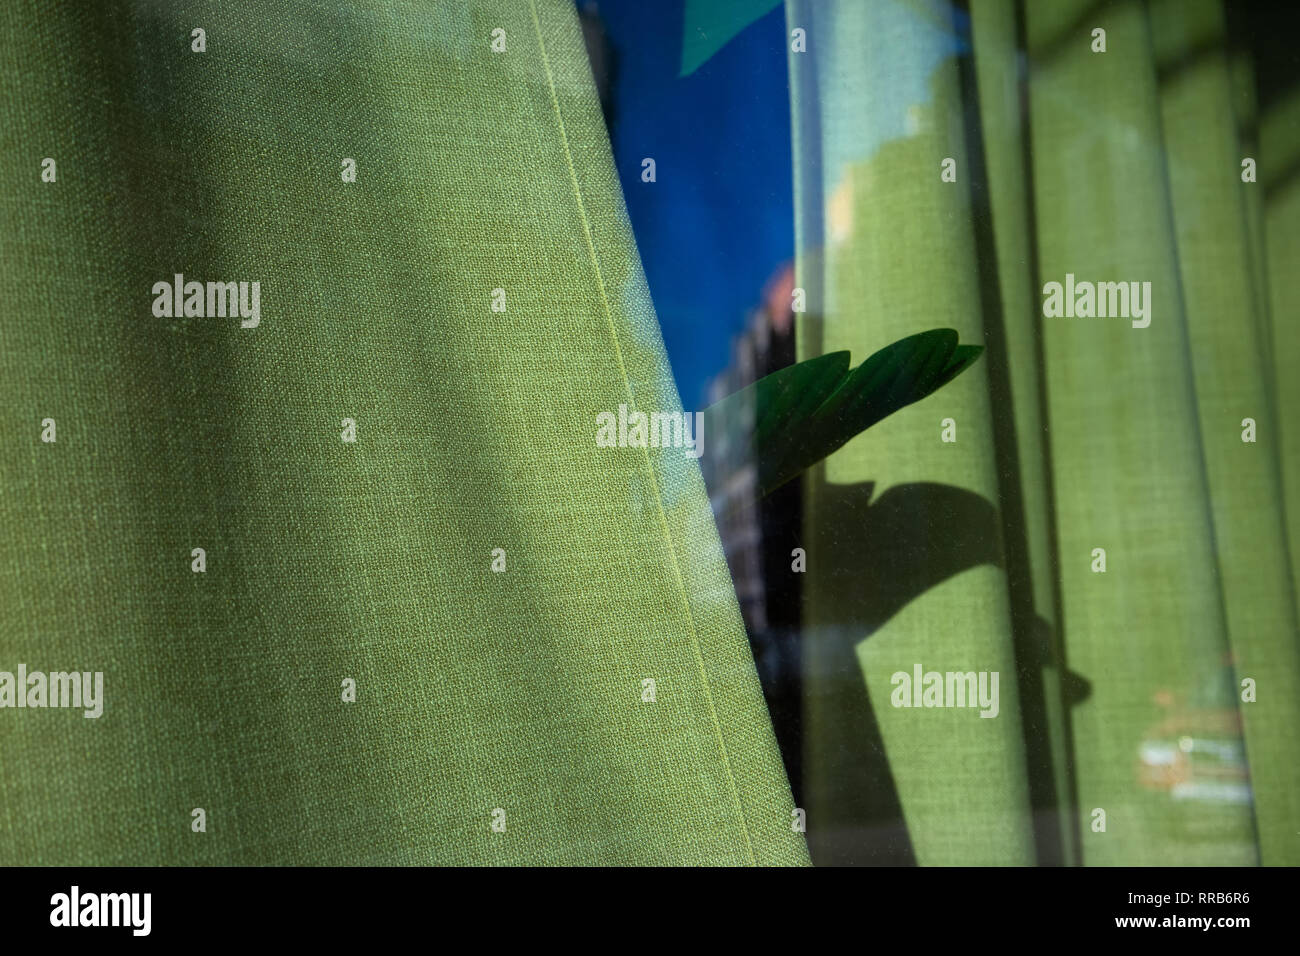 Plant leaf behind green curtains - Stock Image